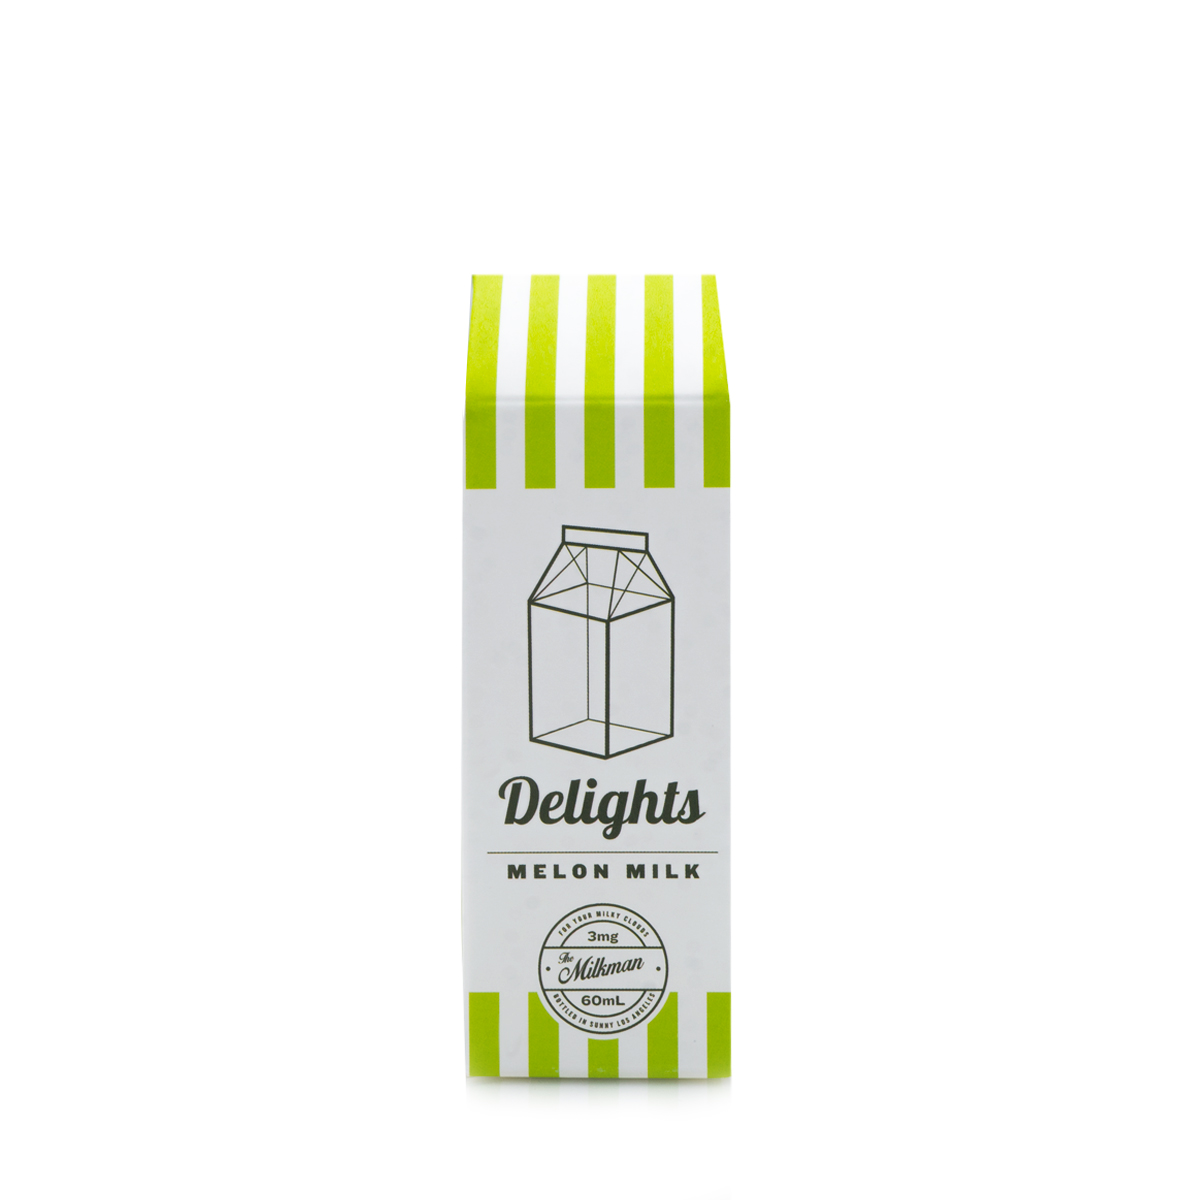 Melon Milk by The Milkman Delights - 60mL Photo